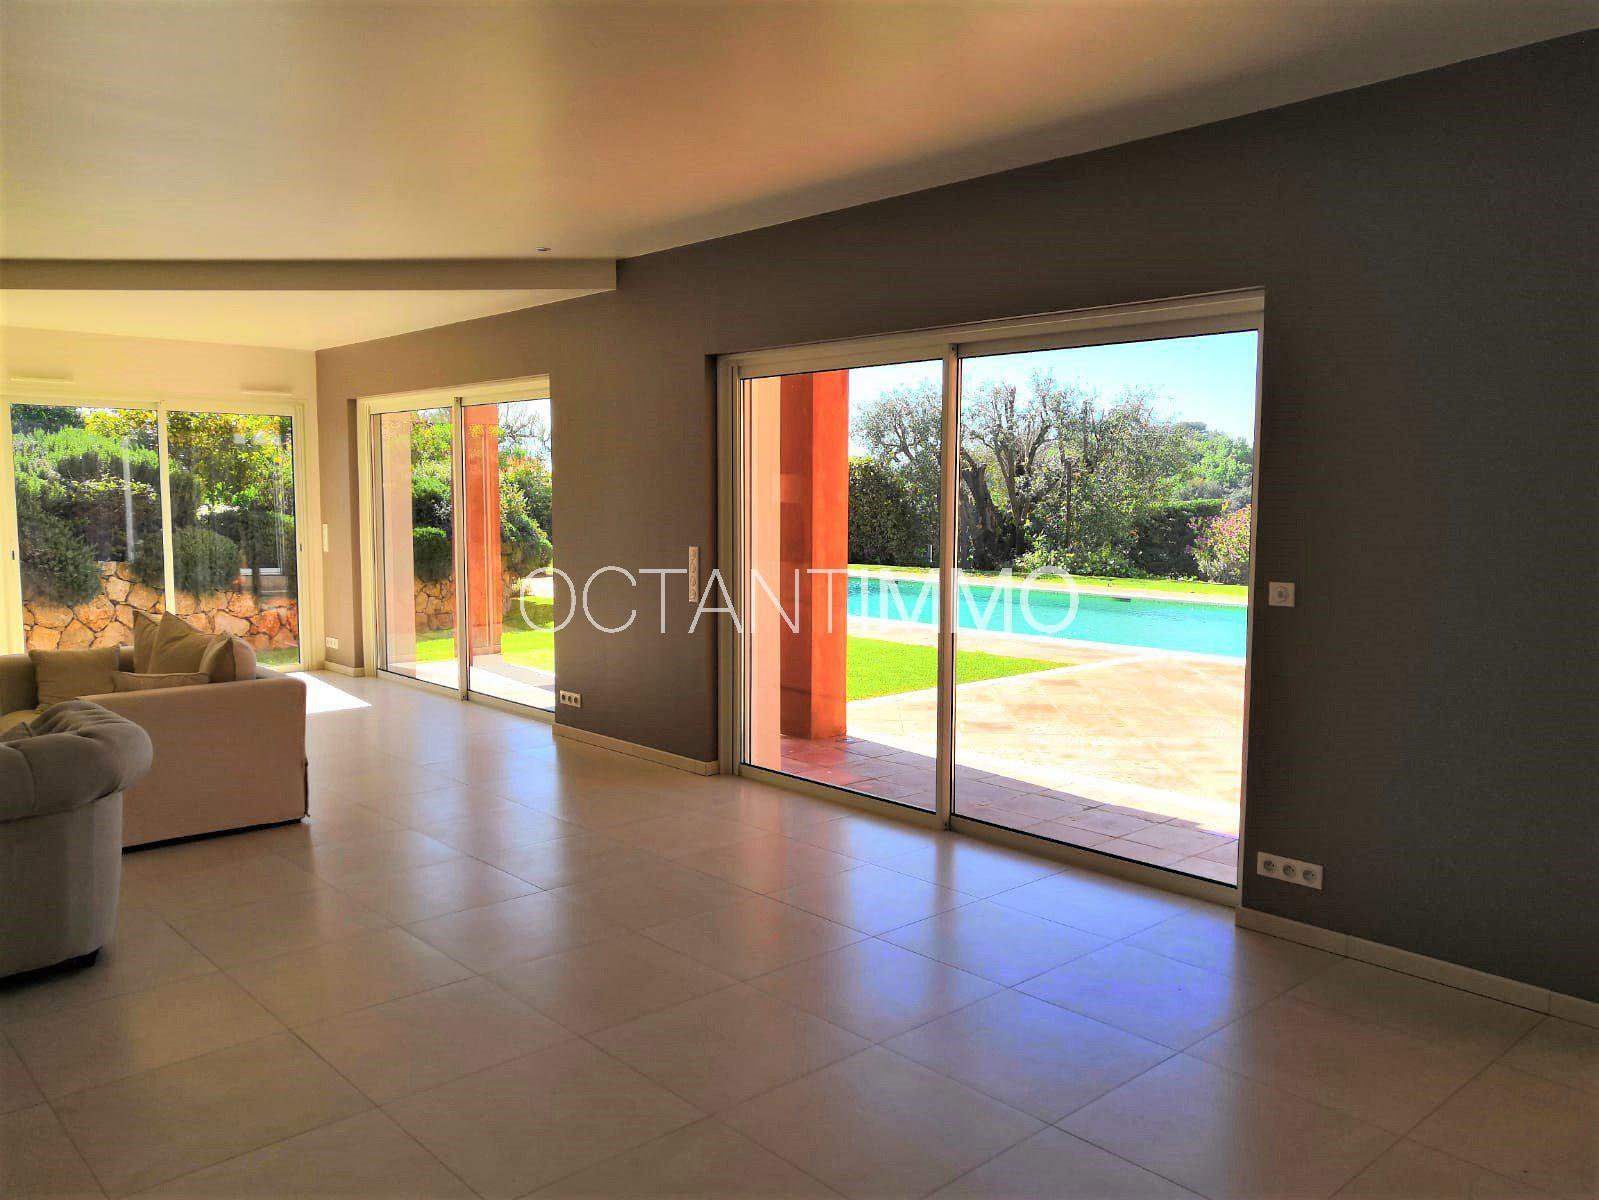 Biot - Domaine de la Chèvre d'or - Beautiful new house with 4 bedrooms